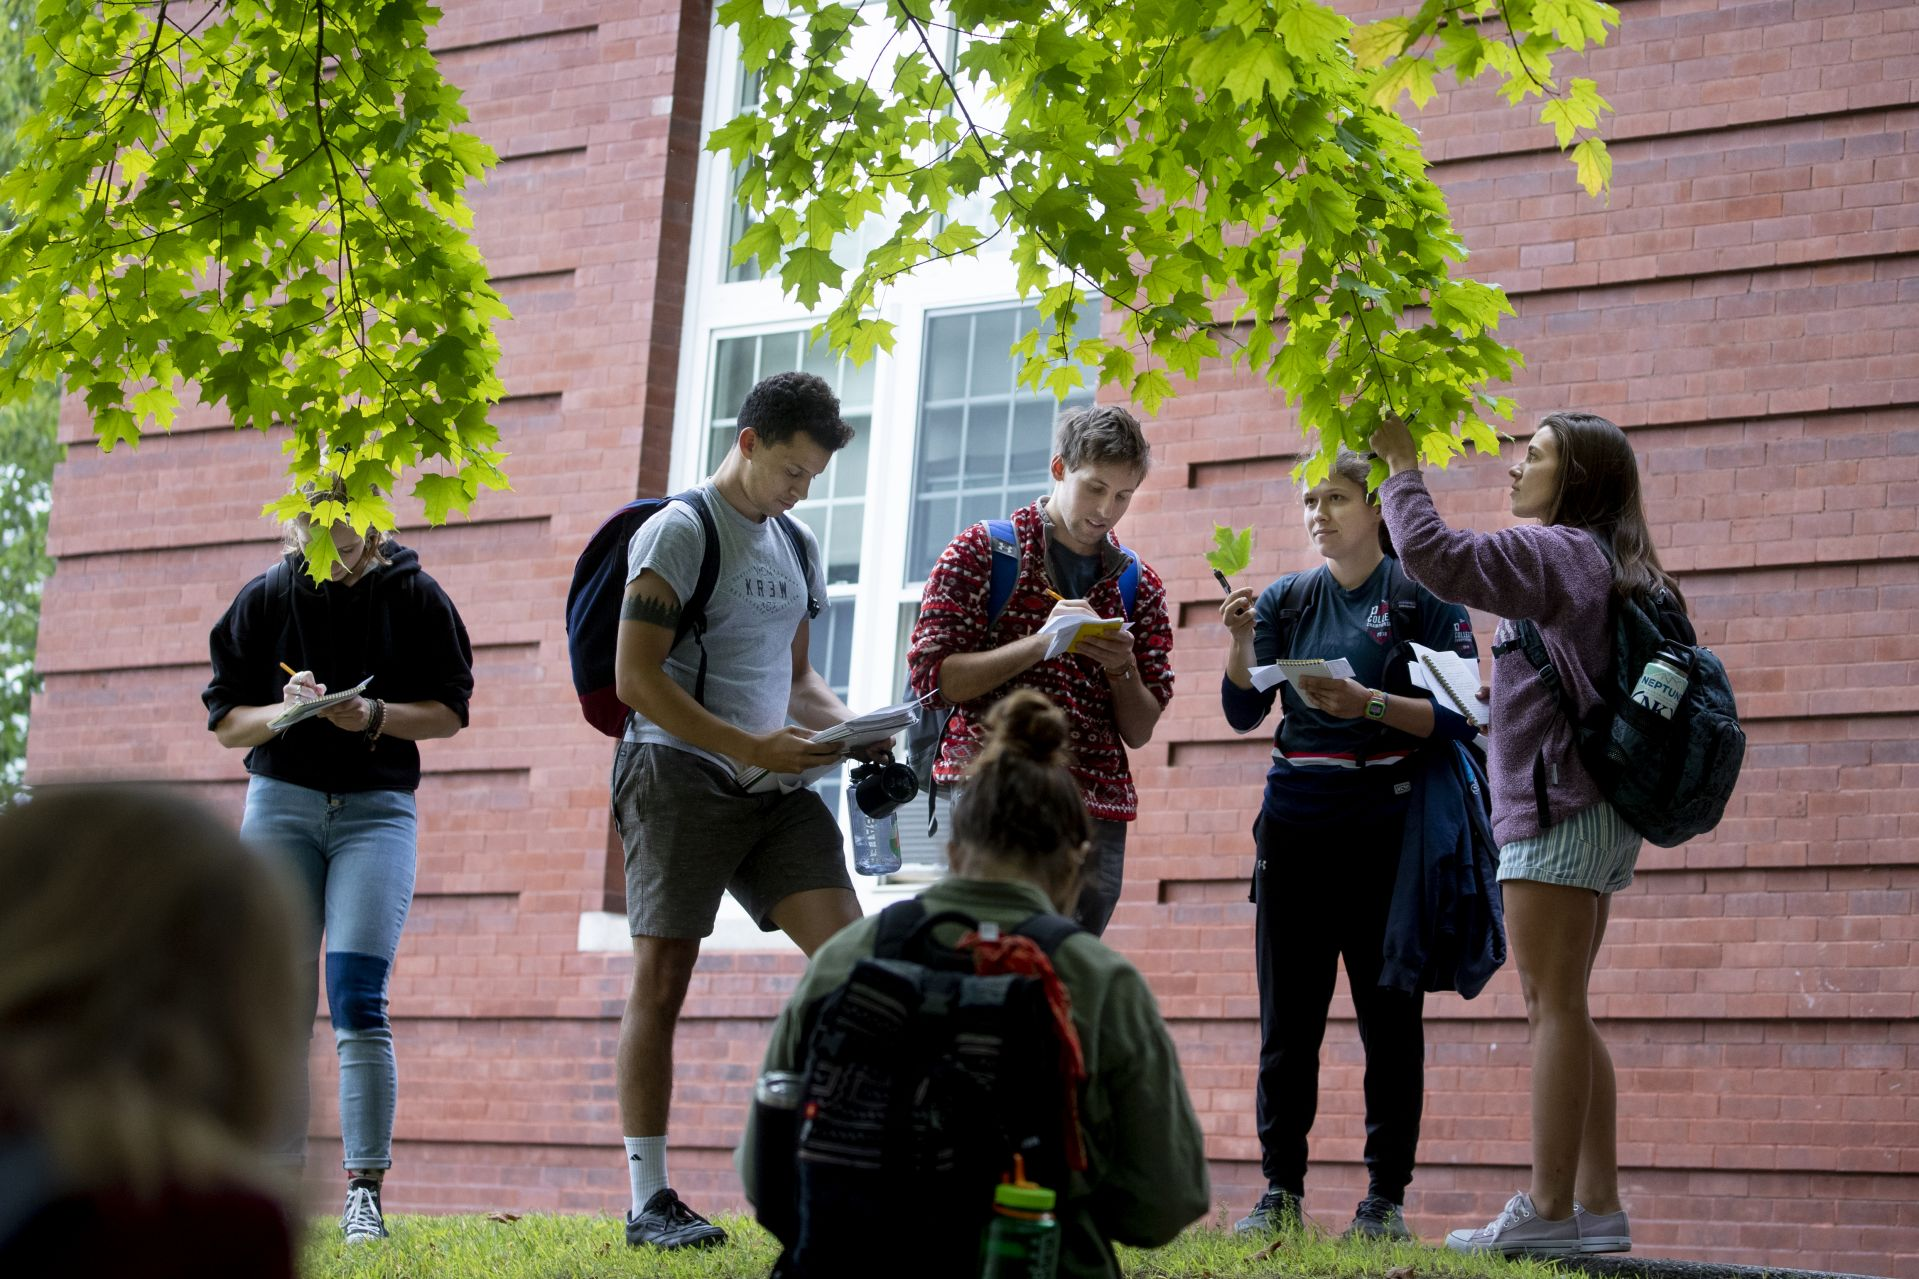 Outside Libbey Forum, students in Assistant Professor of Biology Brett Huggett's dendrology course identify different trees — sugar maple, in this instance — along with catalpa, butternut, red pine, and ginkgo, among others, during a tour of the neighborhood at the foot of Mount David. From left, Bridget Tweedie '21, Eric Viera '20, Zander Schmidt '20, Sarah Delany '20, and Saylor Strugar '21